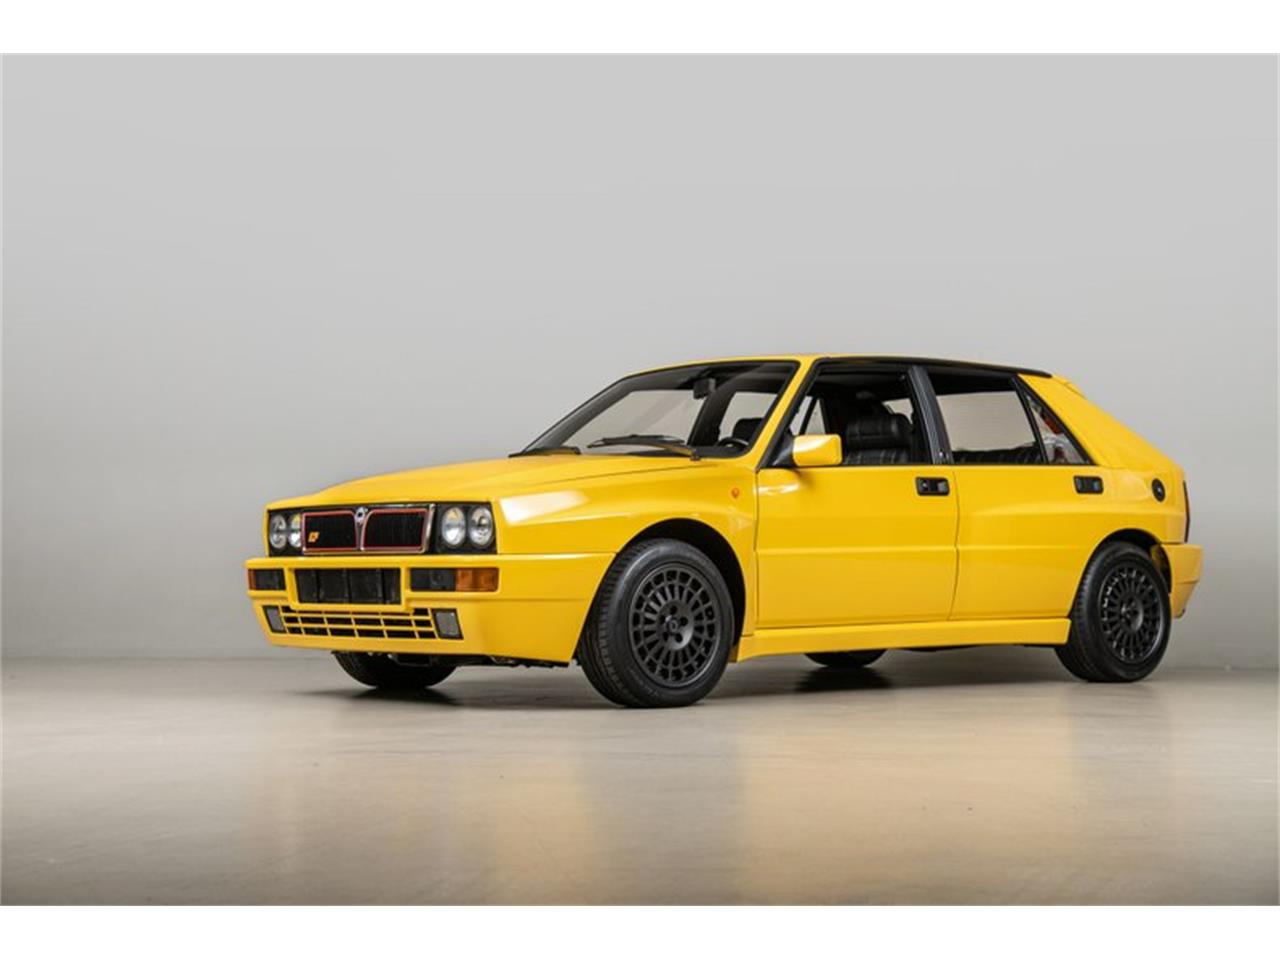 1992 Lancia Delta (CC-1259184) for sale in Scotts Valley, California